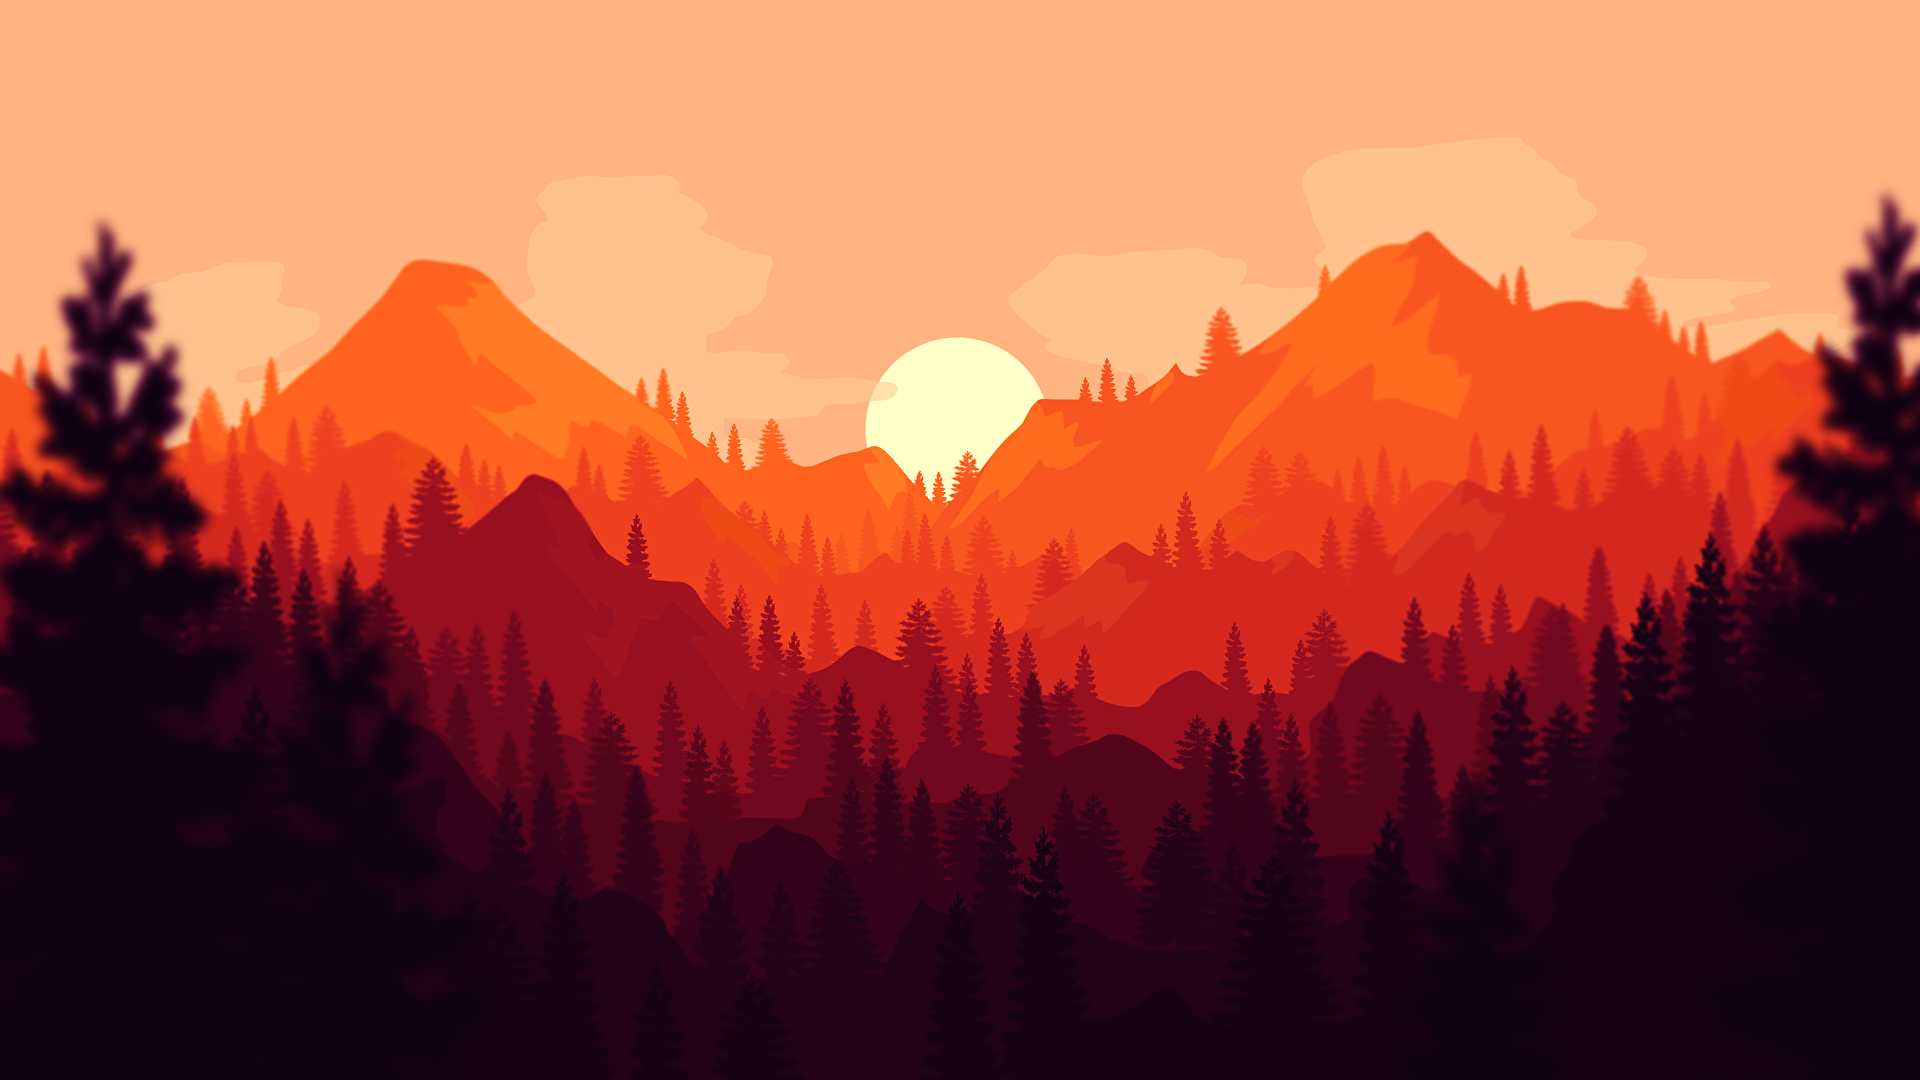 Clean Firewatch Styled Wallpaper wallpapers 1920x1080